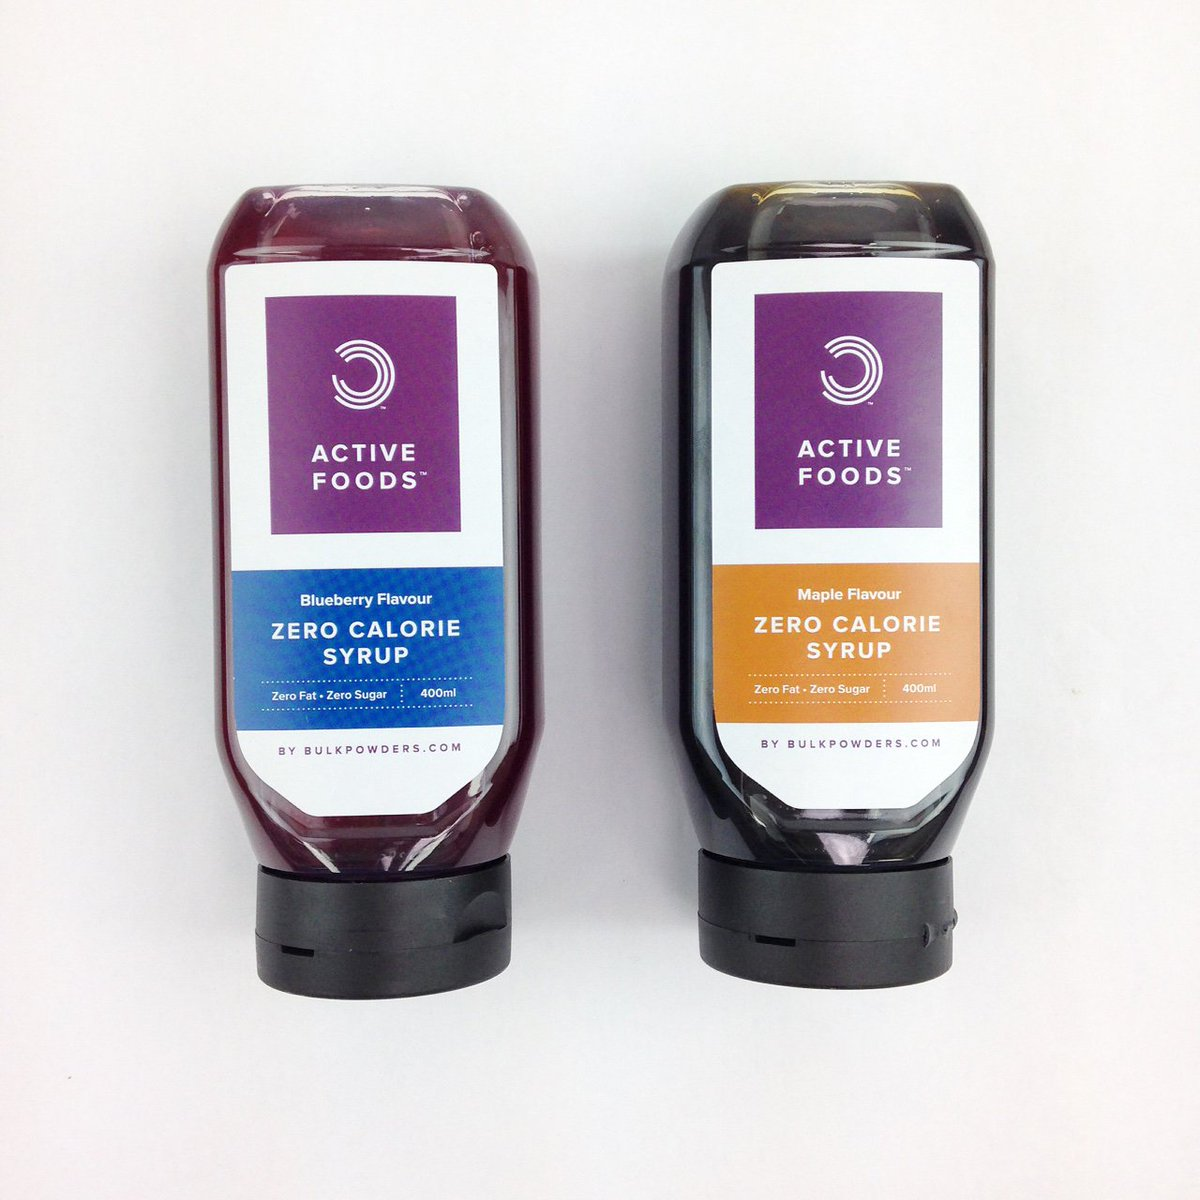 ... Syrup & Butterscotch back in stock - NEW Blueberry flavour in stock - 2  x NEW coming next week! http://www.bulkpowders.co.uk/zero-calorie-syrup.html  … ...